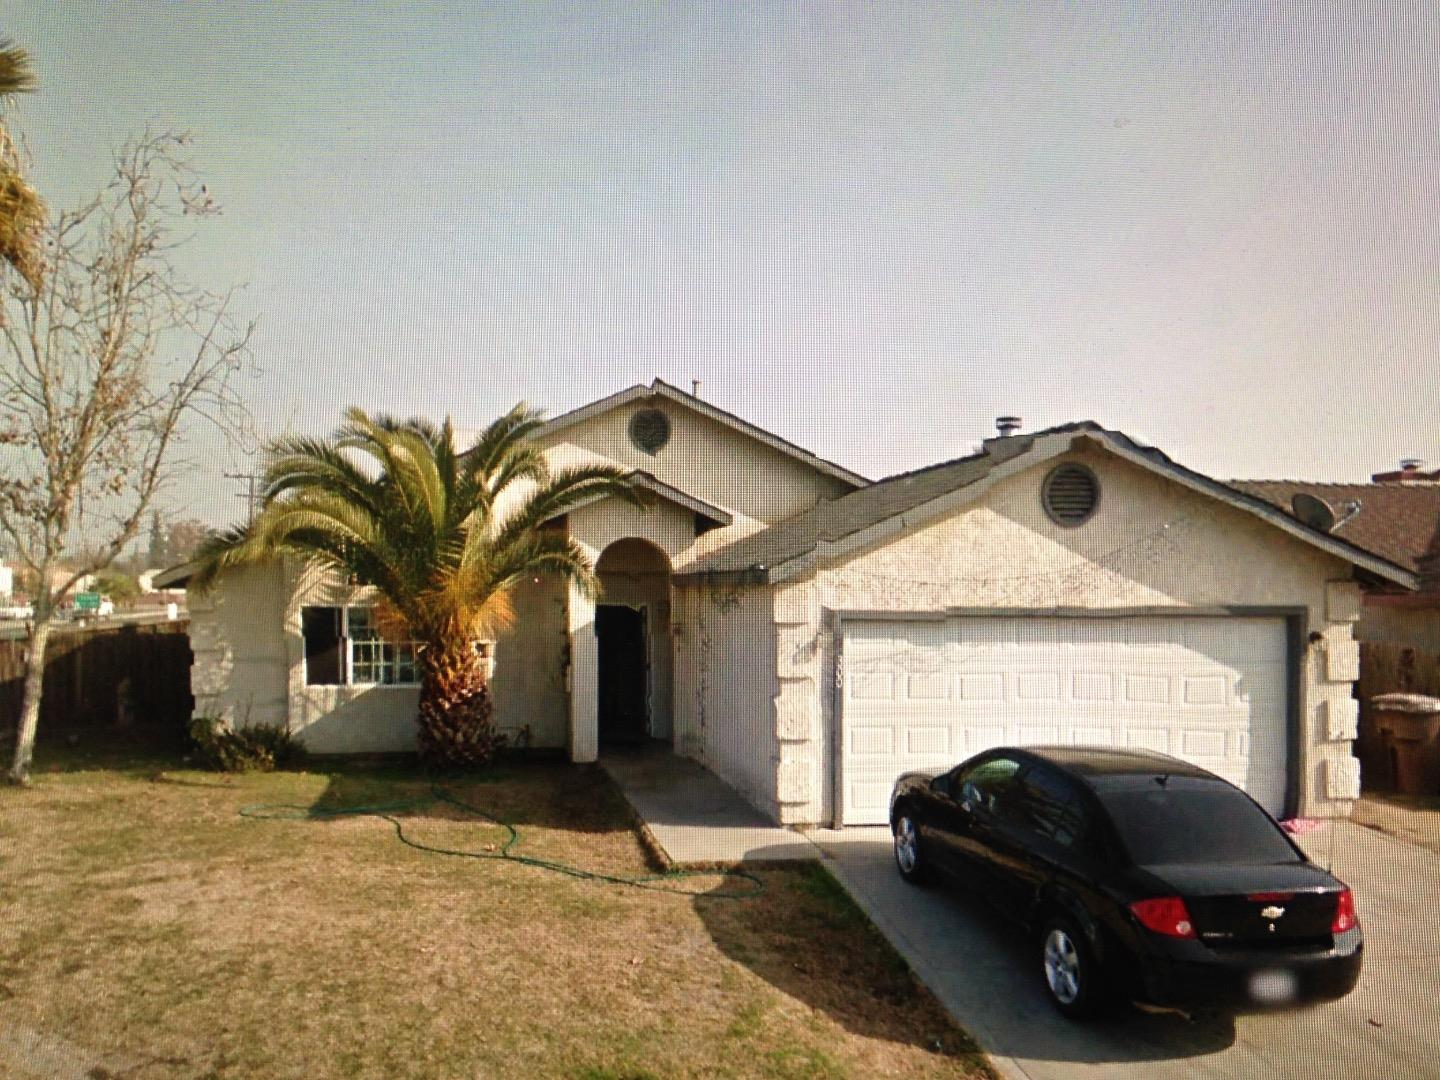 Single Family Home for Sale at 300 Marin Street 300 Marin Street Tulare, California 93274 United States